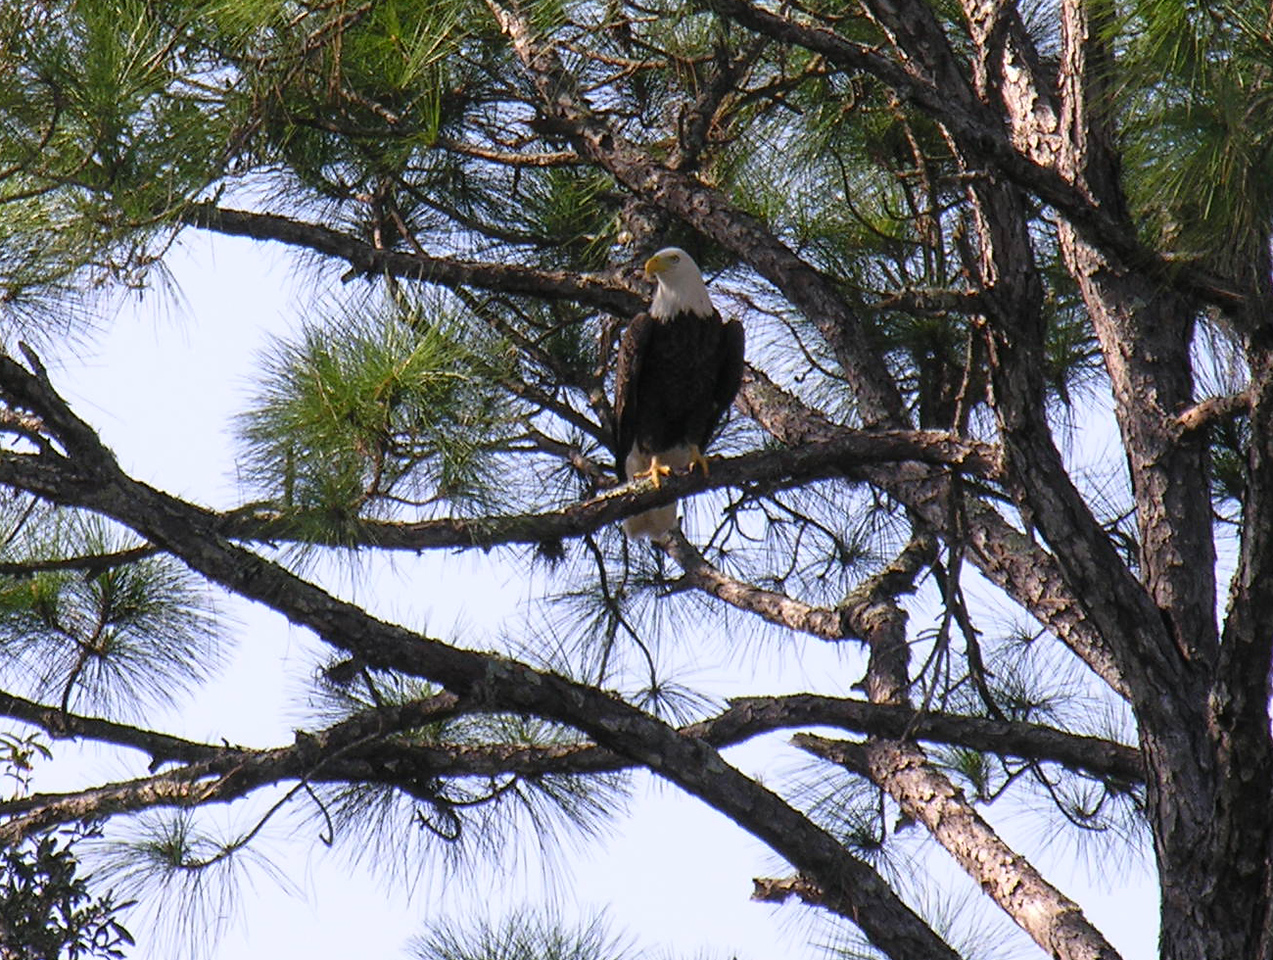 The American Bald Eagle: Watching over us on the Florida Trail <br /> PHOTO by Carl M Anglesea